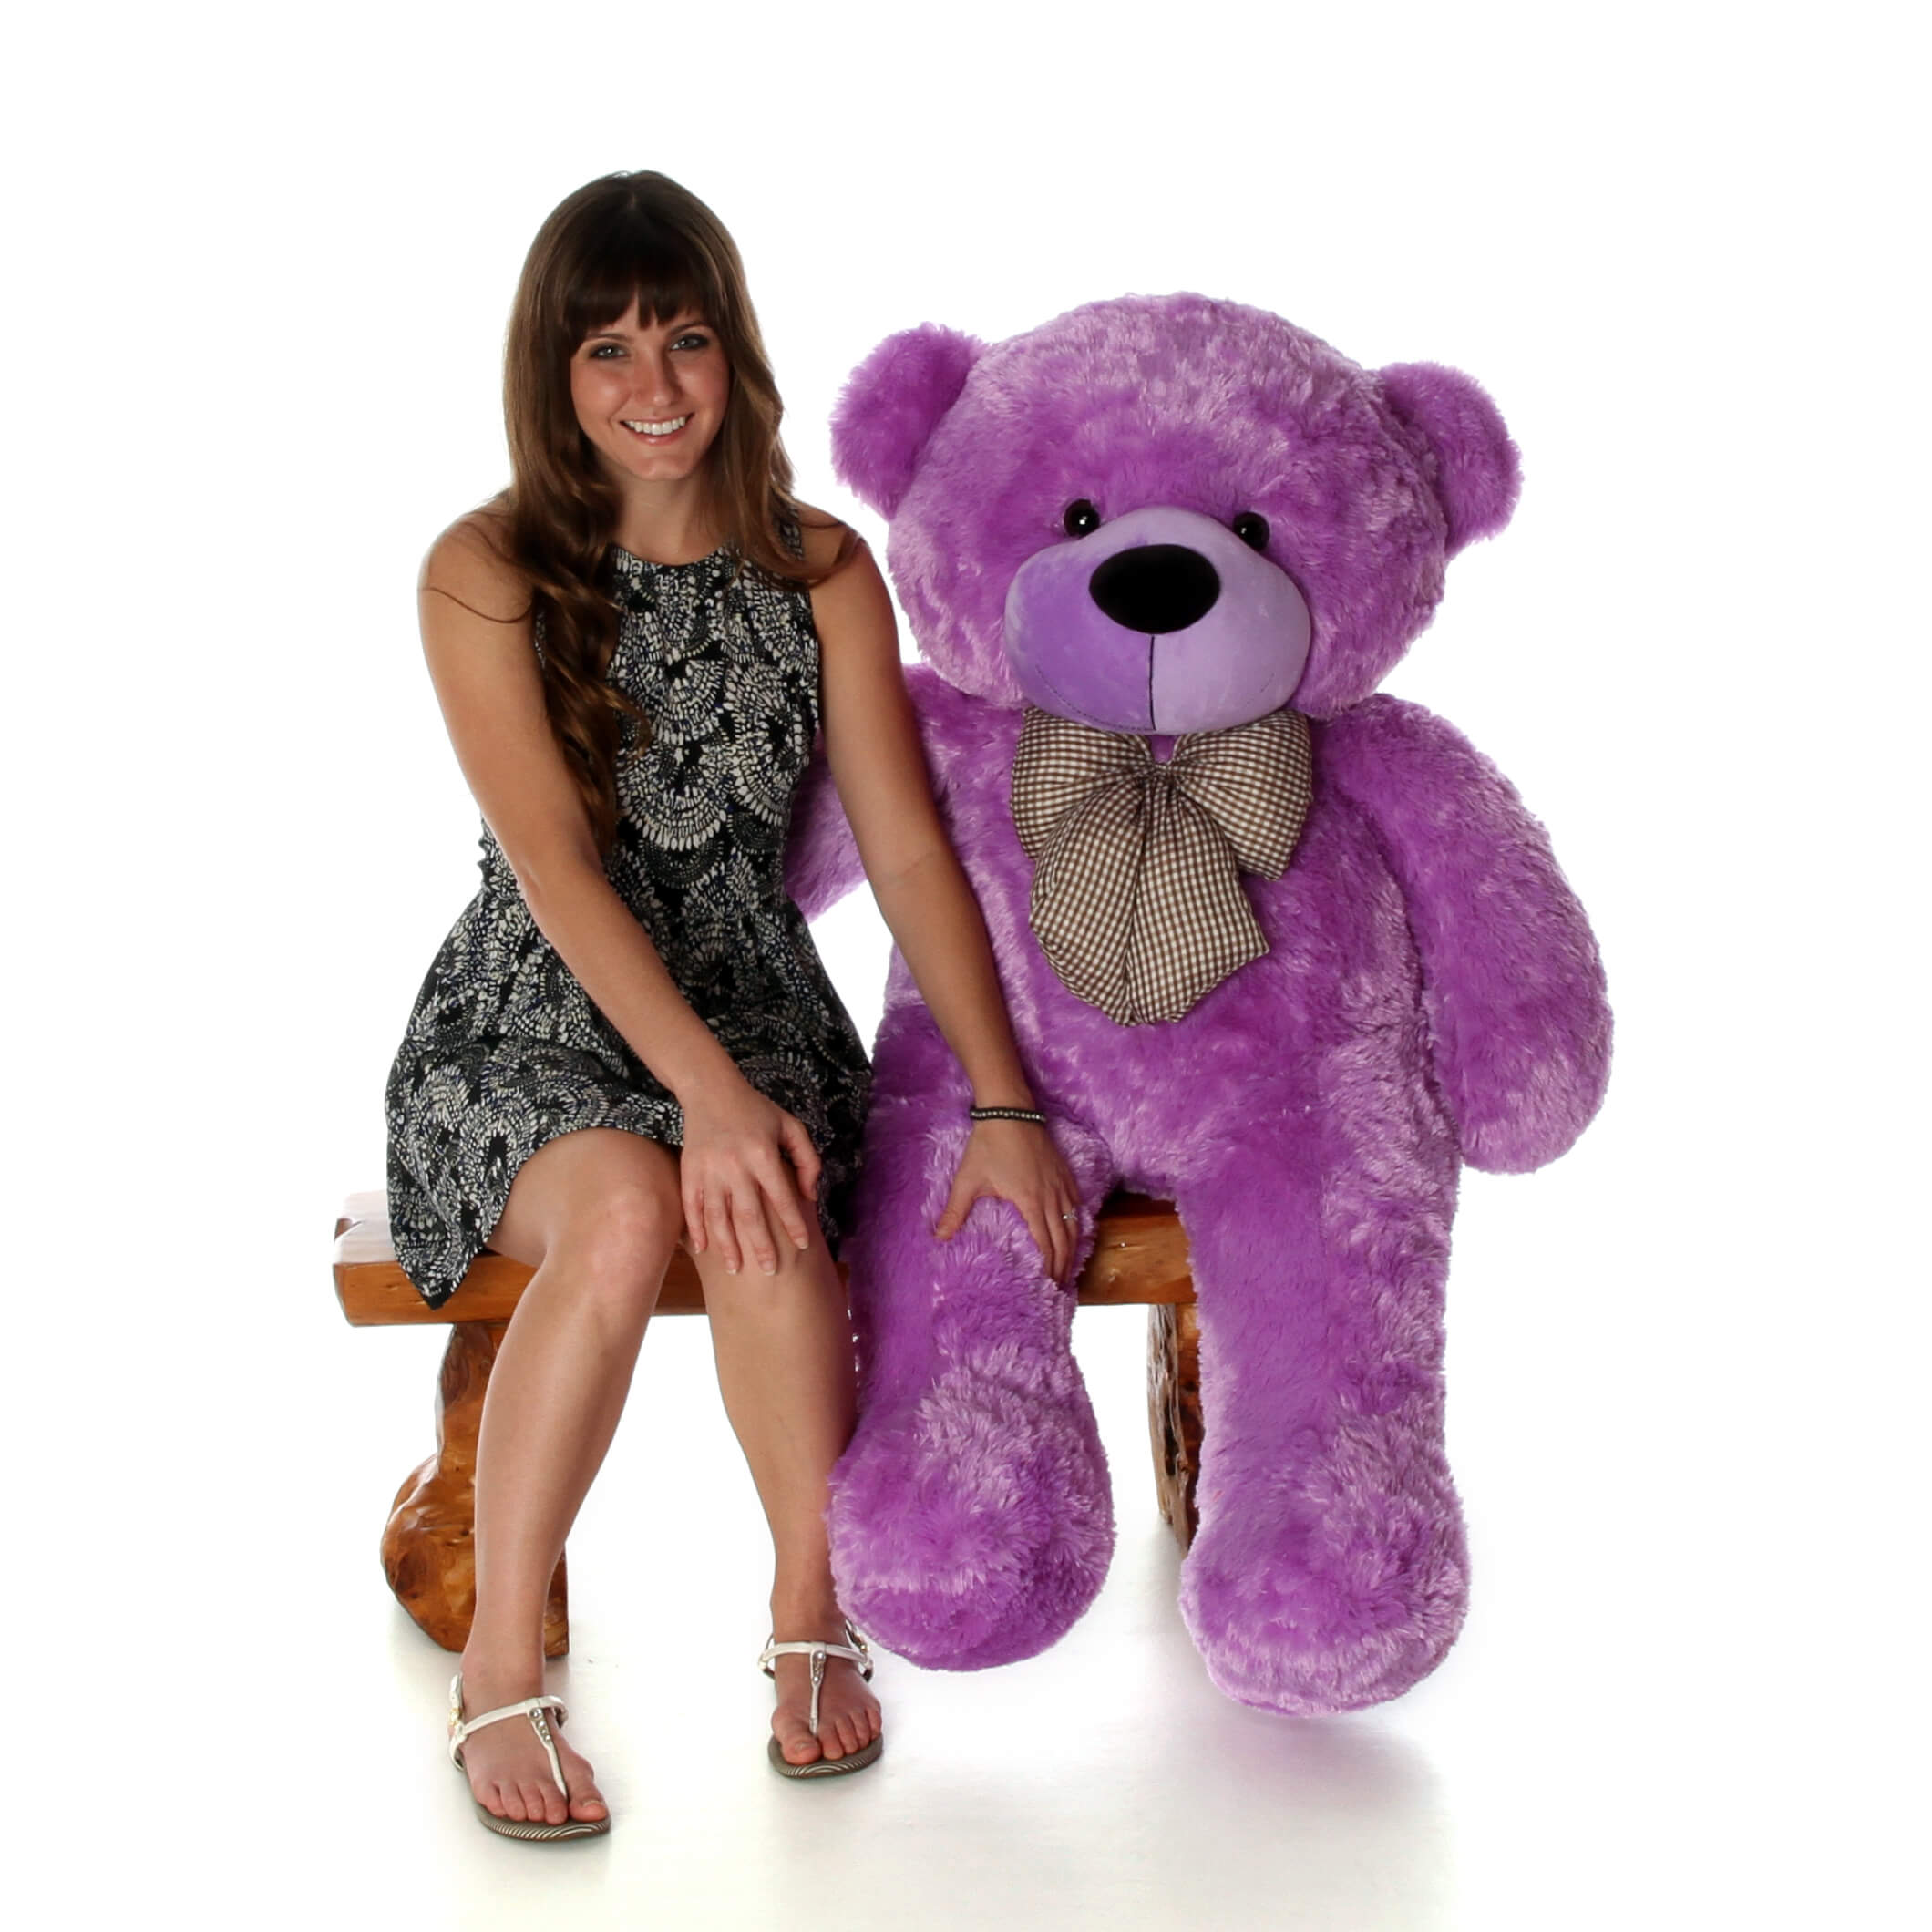 4ft-purple-life-size-teddy-bear-gift-of-a-lifetime-deedee-cuddles-1.jpg